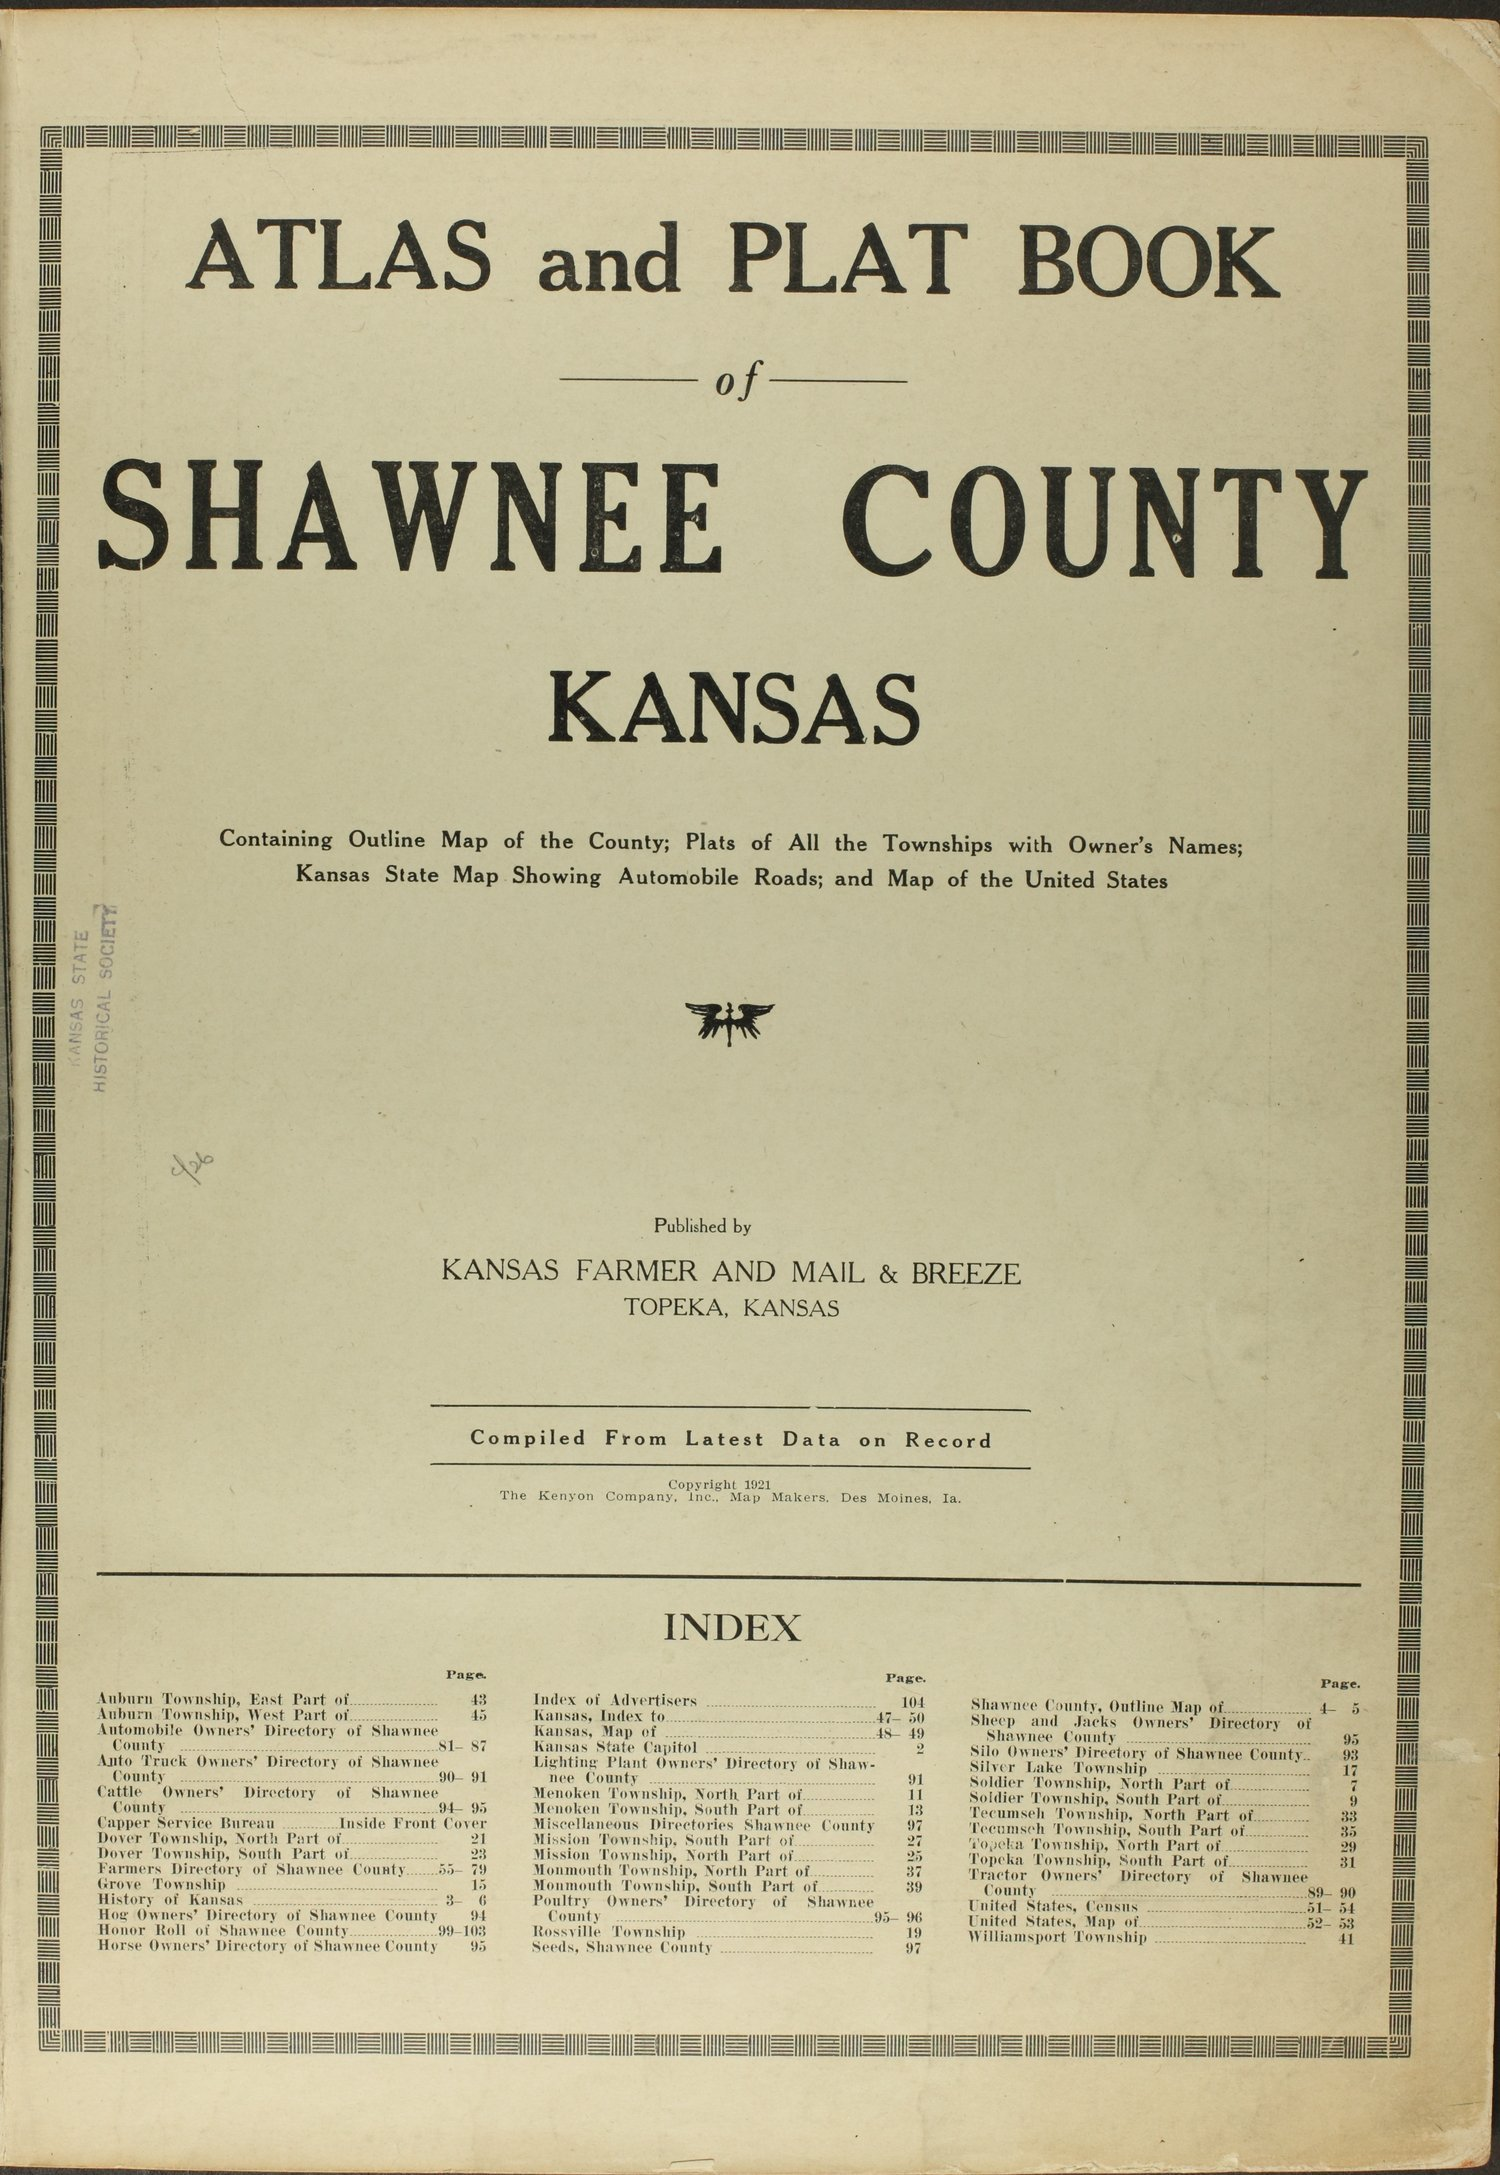 Atlas and plat book of Shawnee County, Kansas - Title Page